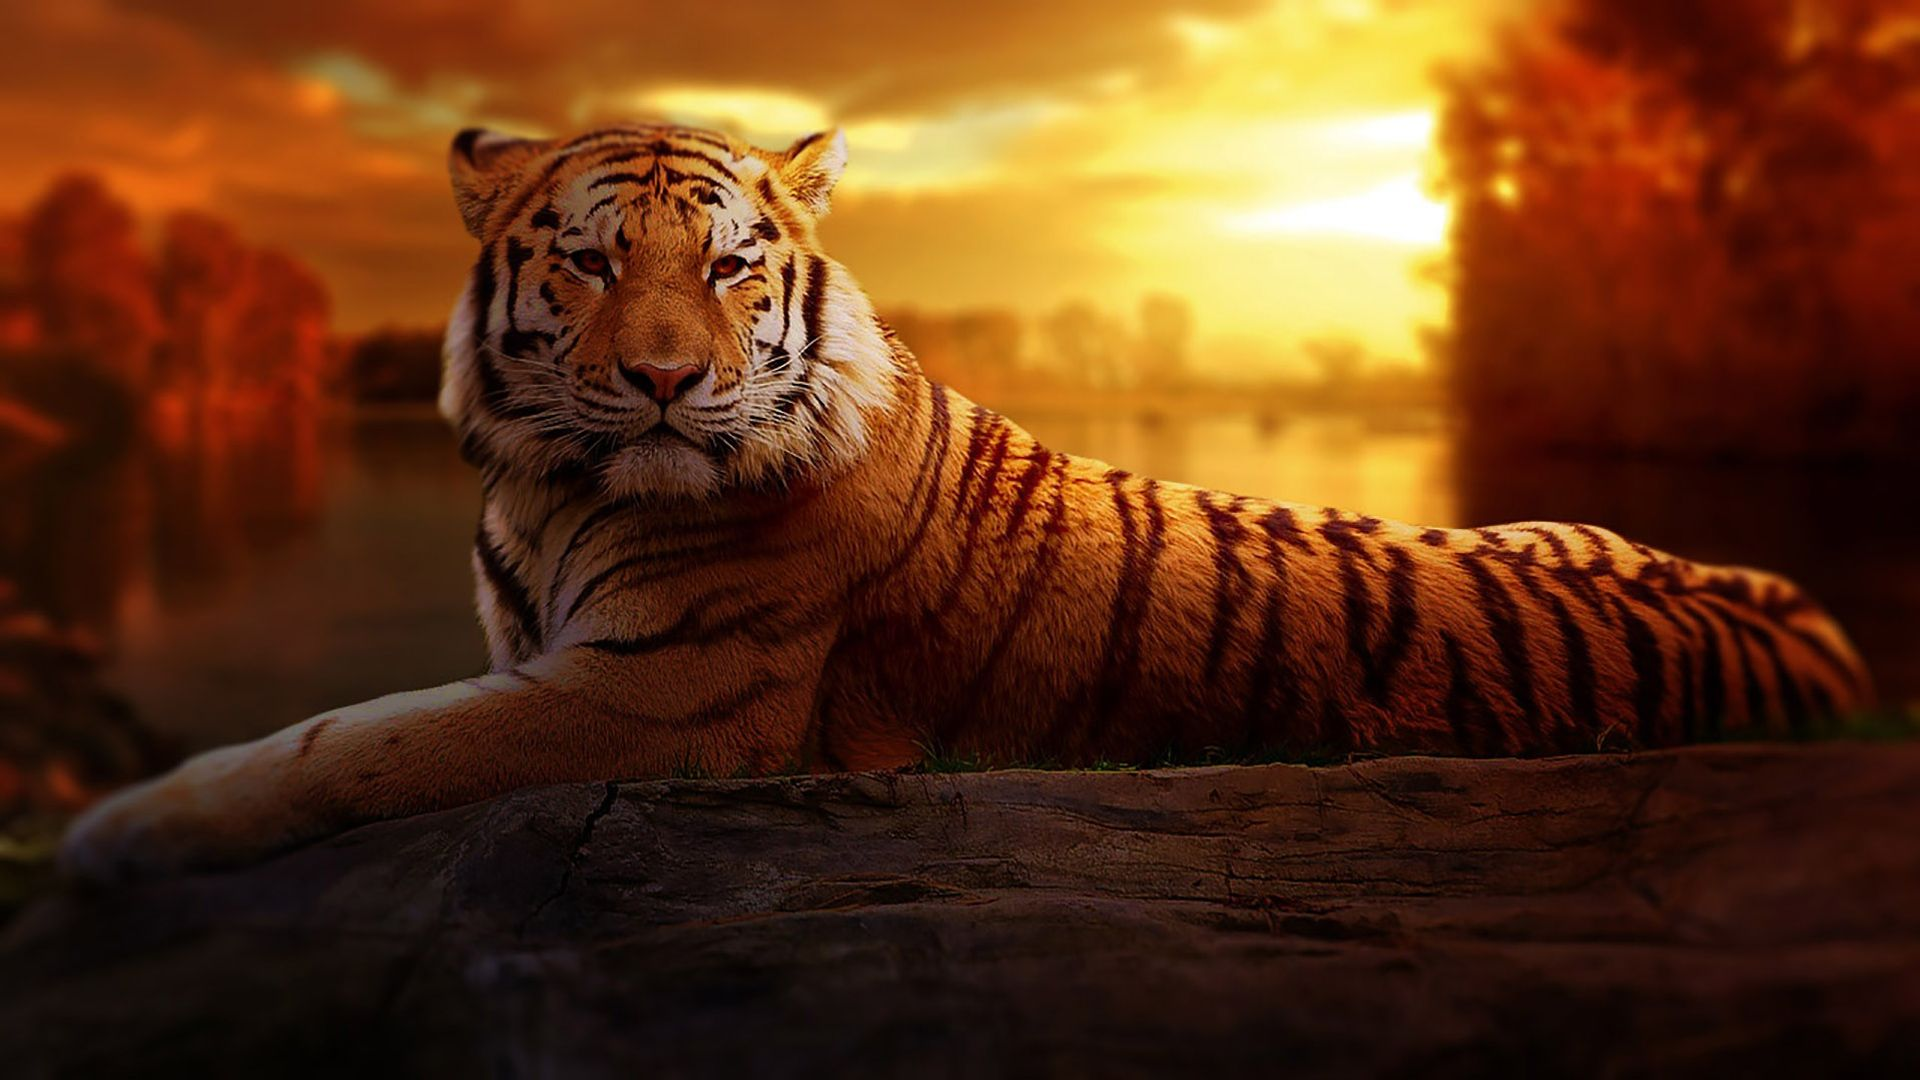 tiger picture download